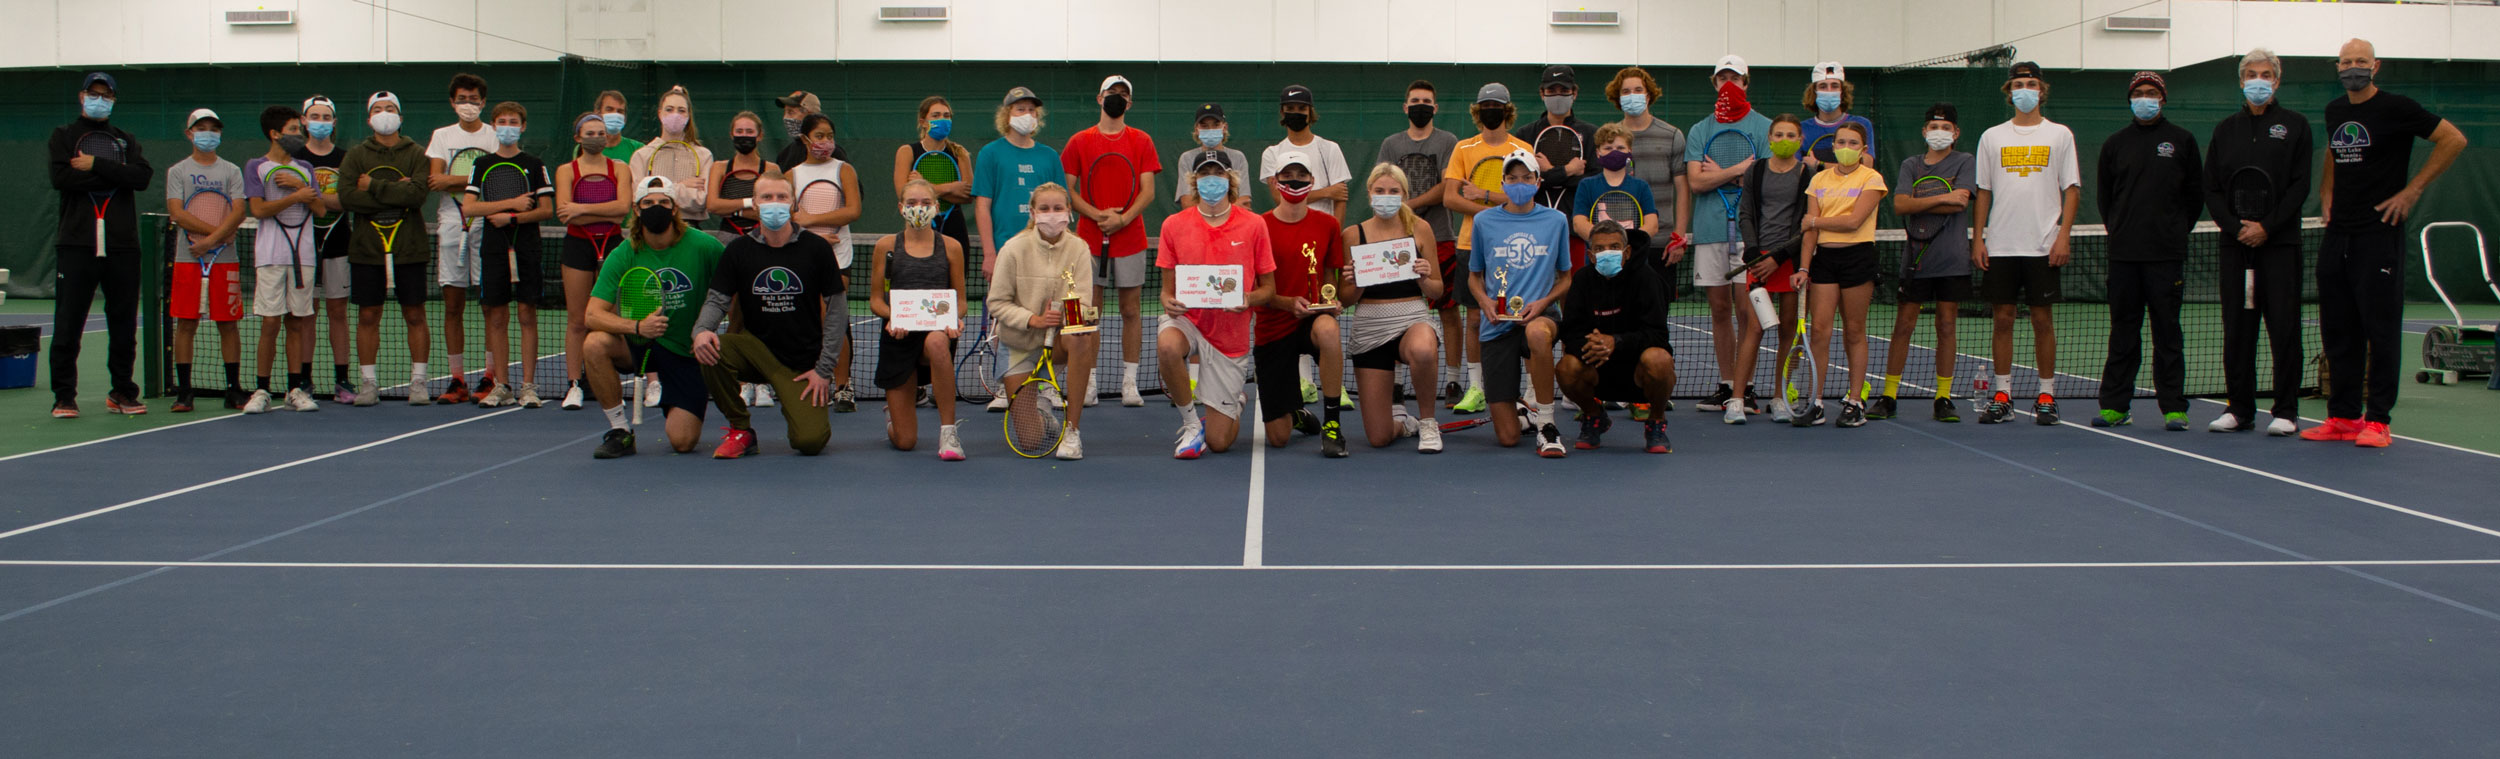 Junior Tennis Coaches and Students